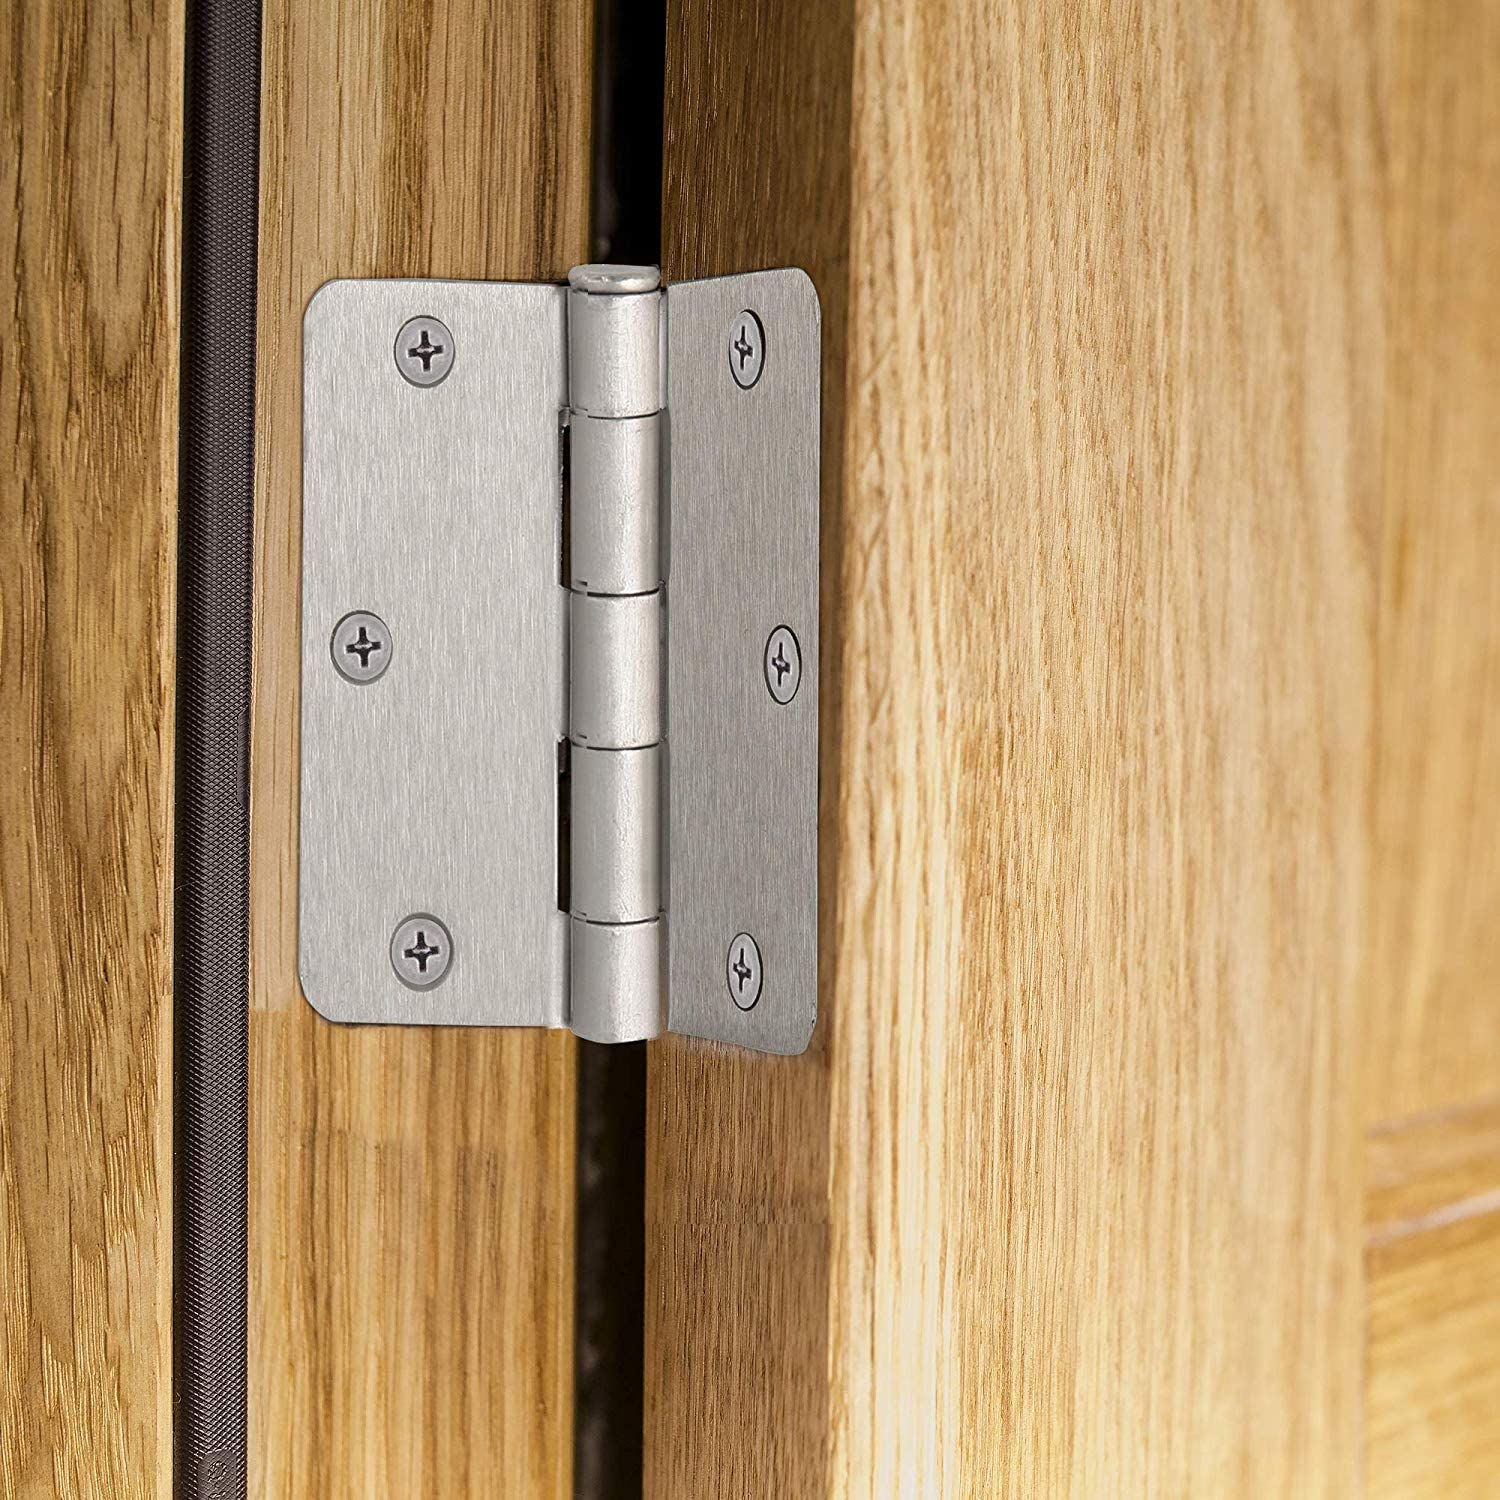 50 Pack Y/&Y Decor 3.5 x 3.5 Satin Nickel Interior Door Hinges with 1//4 Radius Corners Brushed Nickel